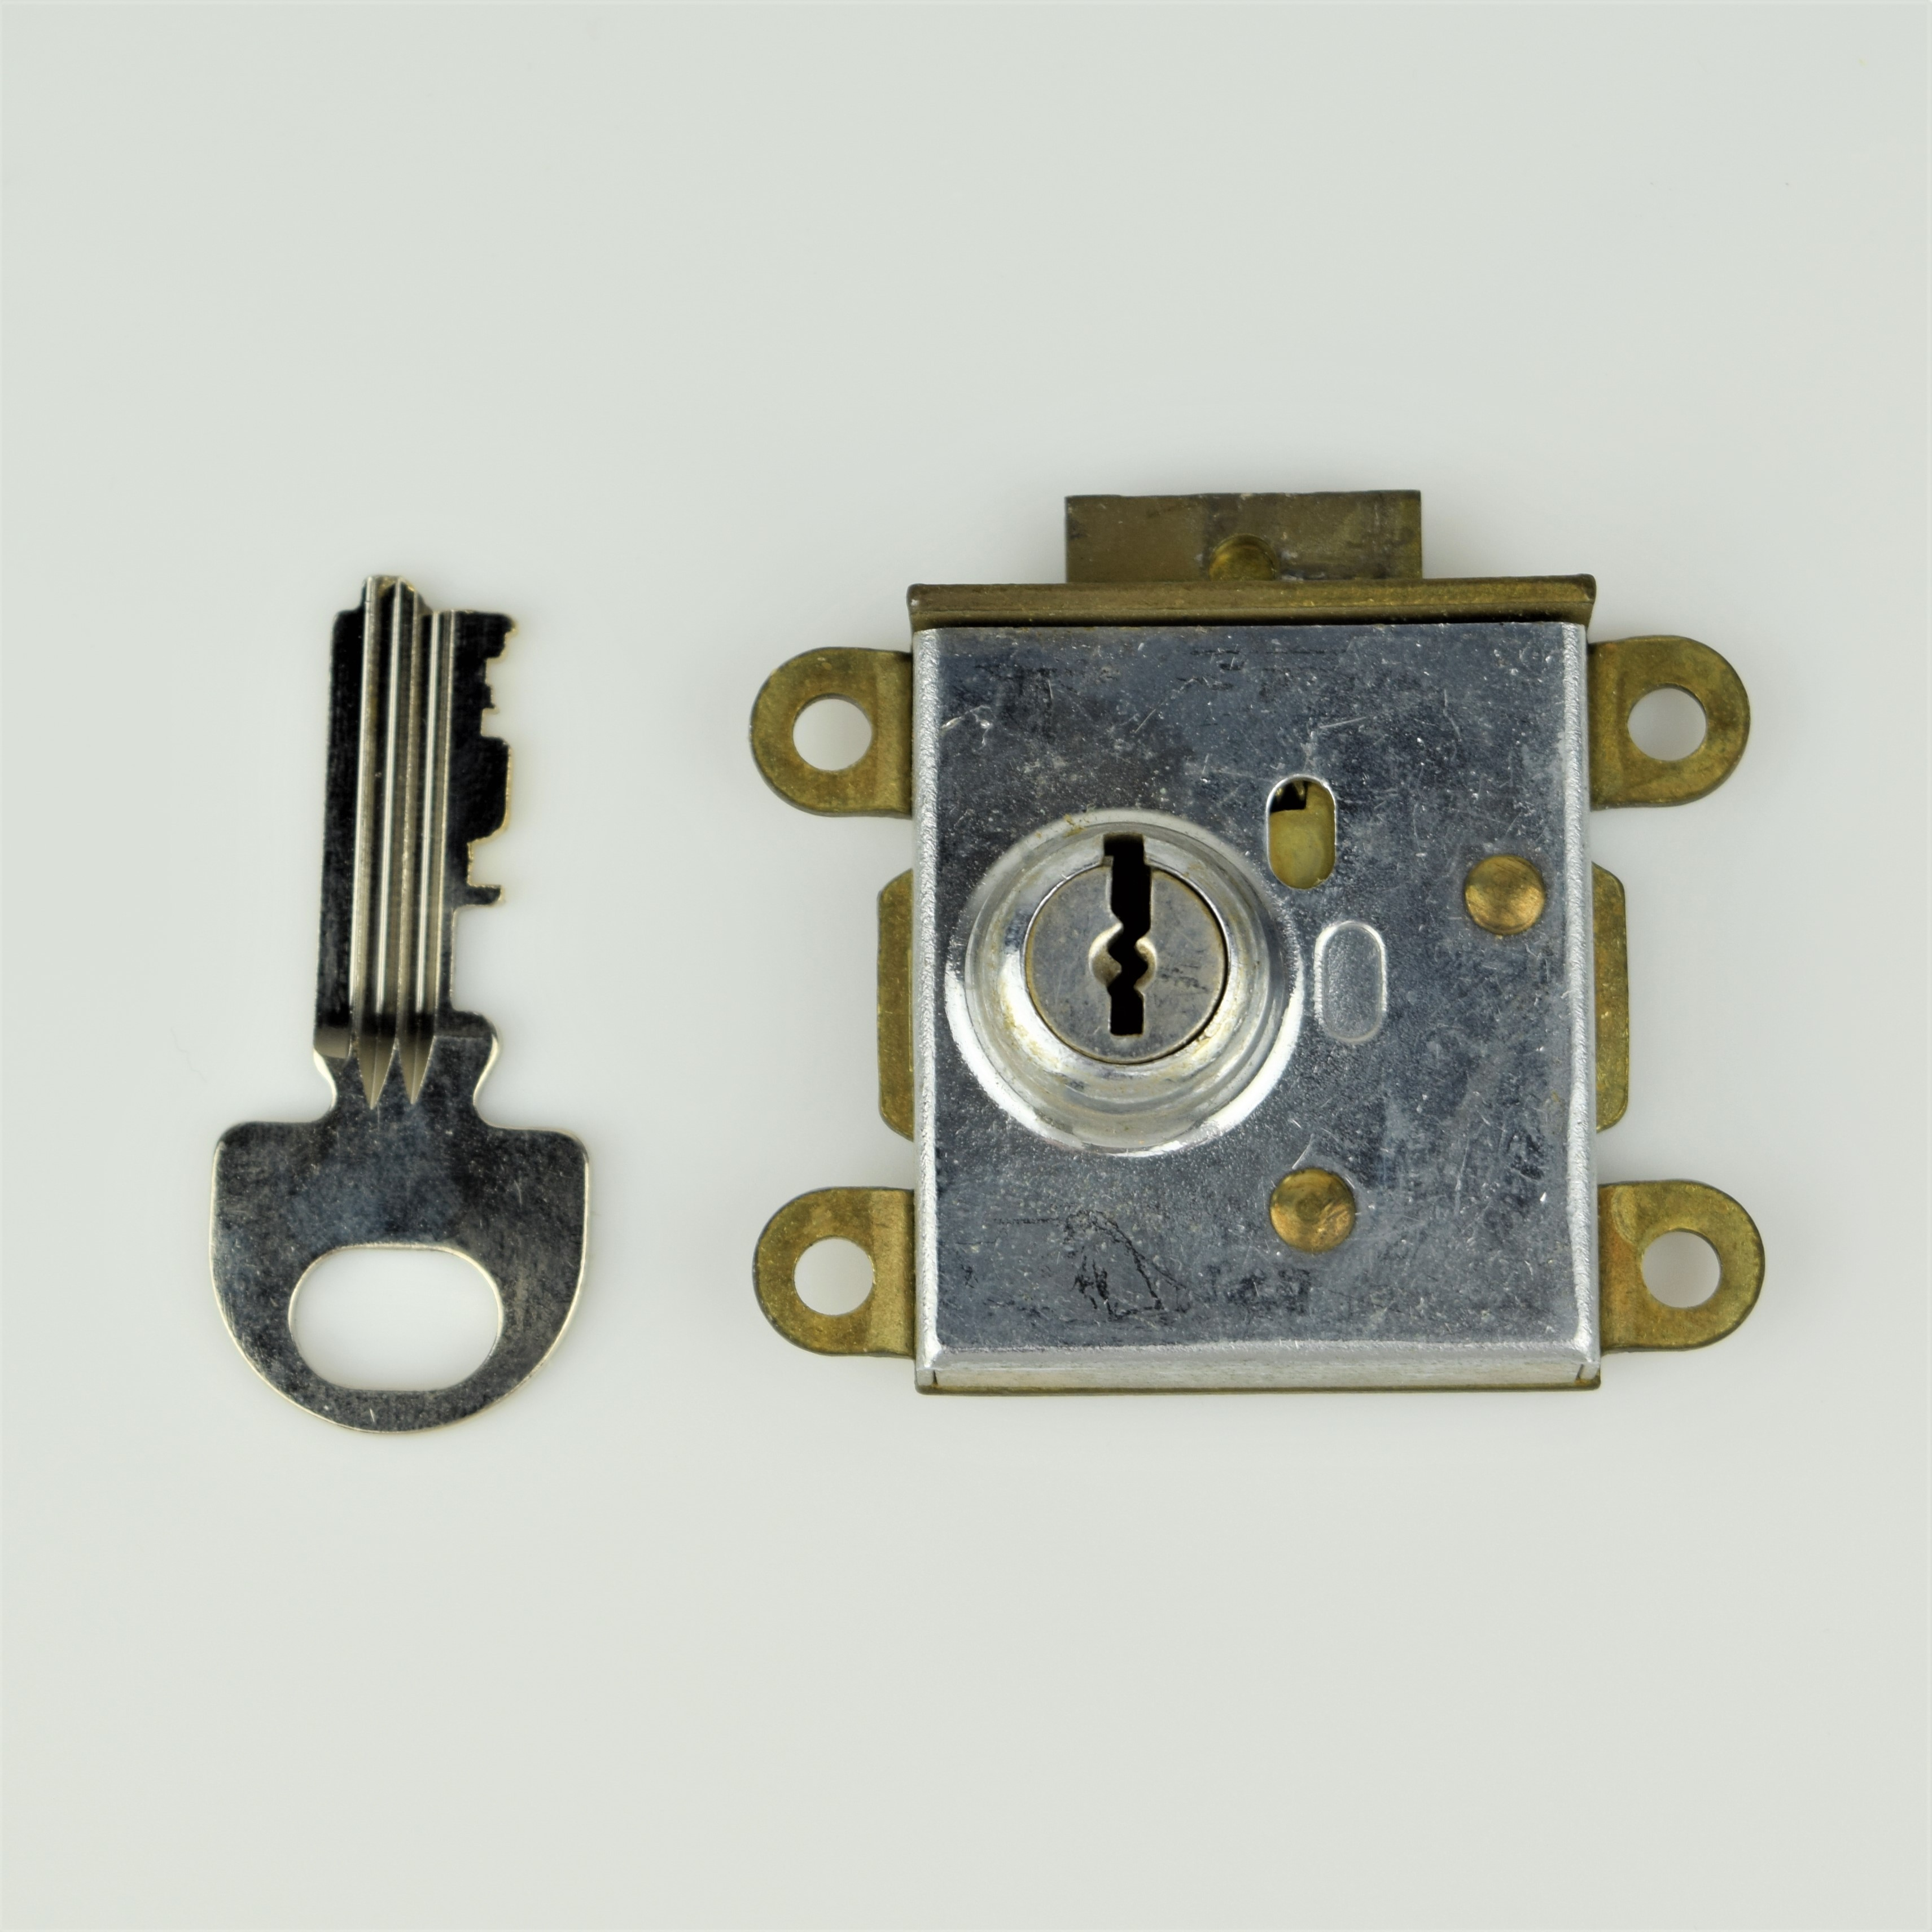 Automatic Electric - 29S Lock & Key